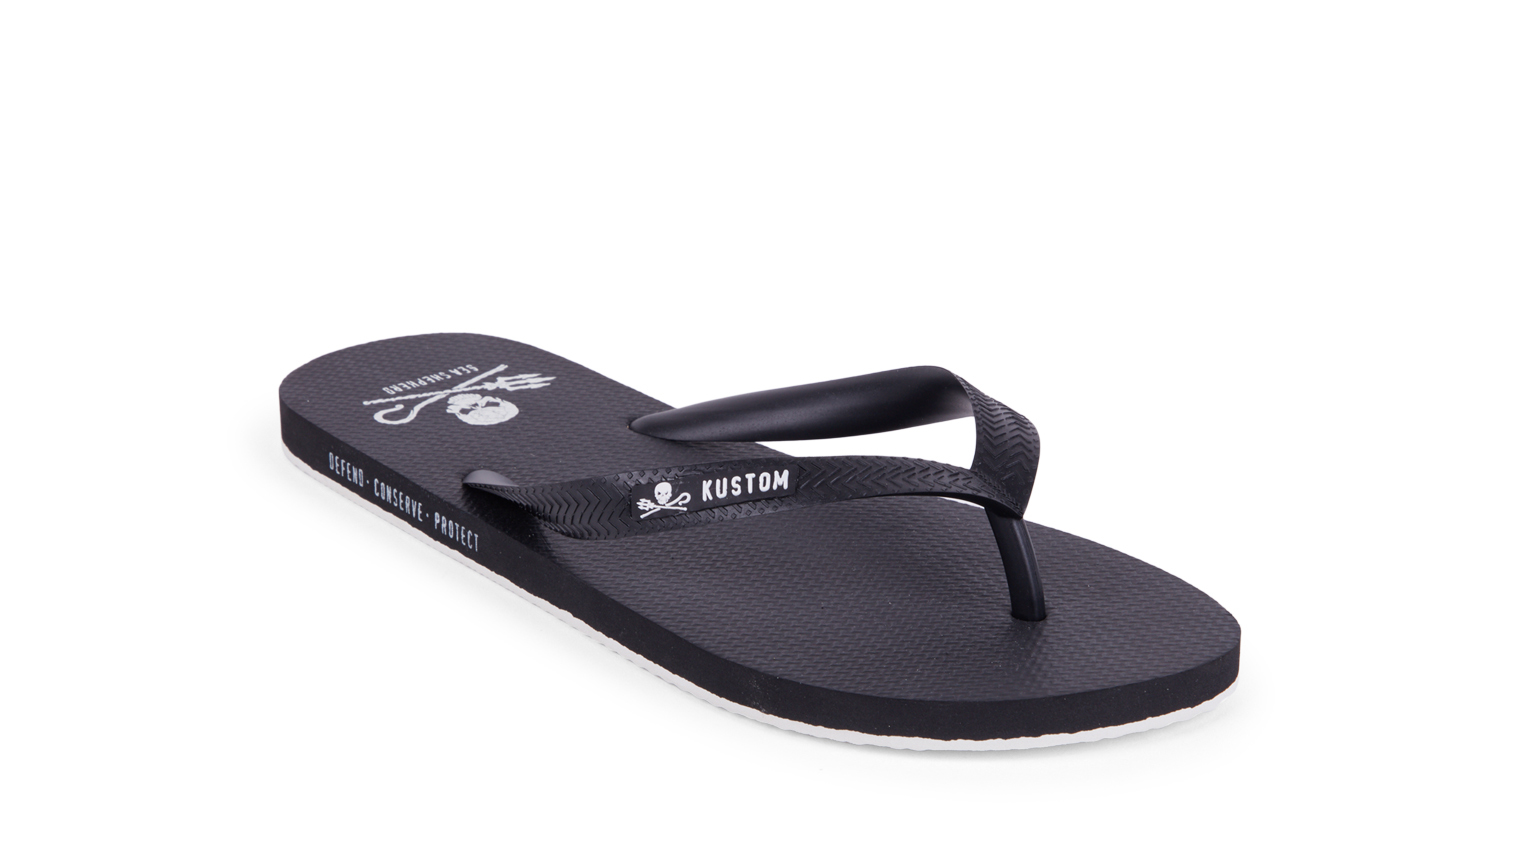 KUSTOM THONGS SEA SHEPHERD THONG / BLACK